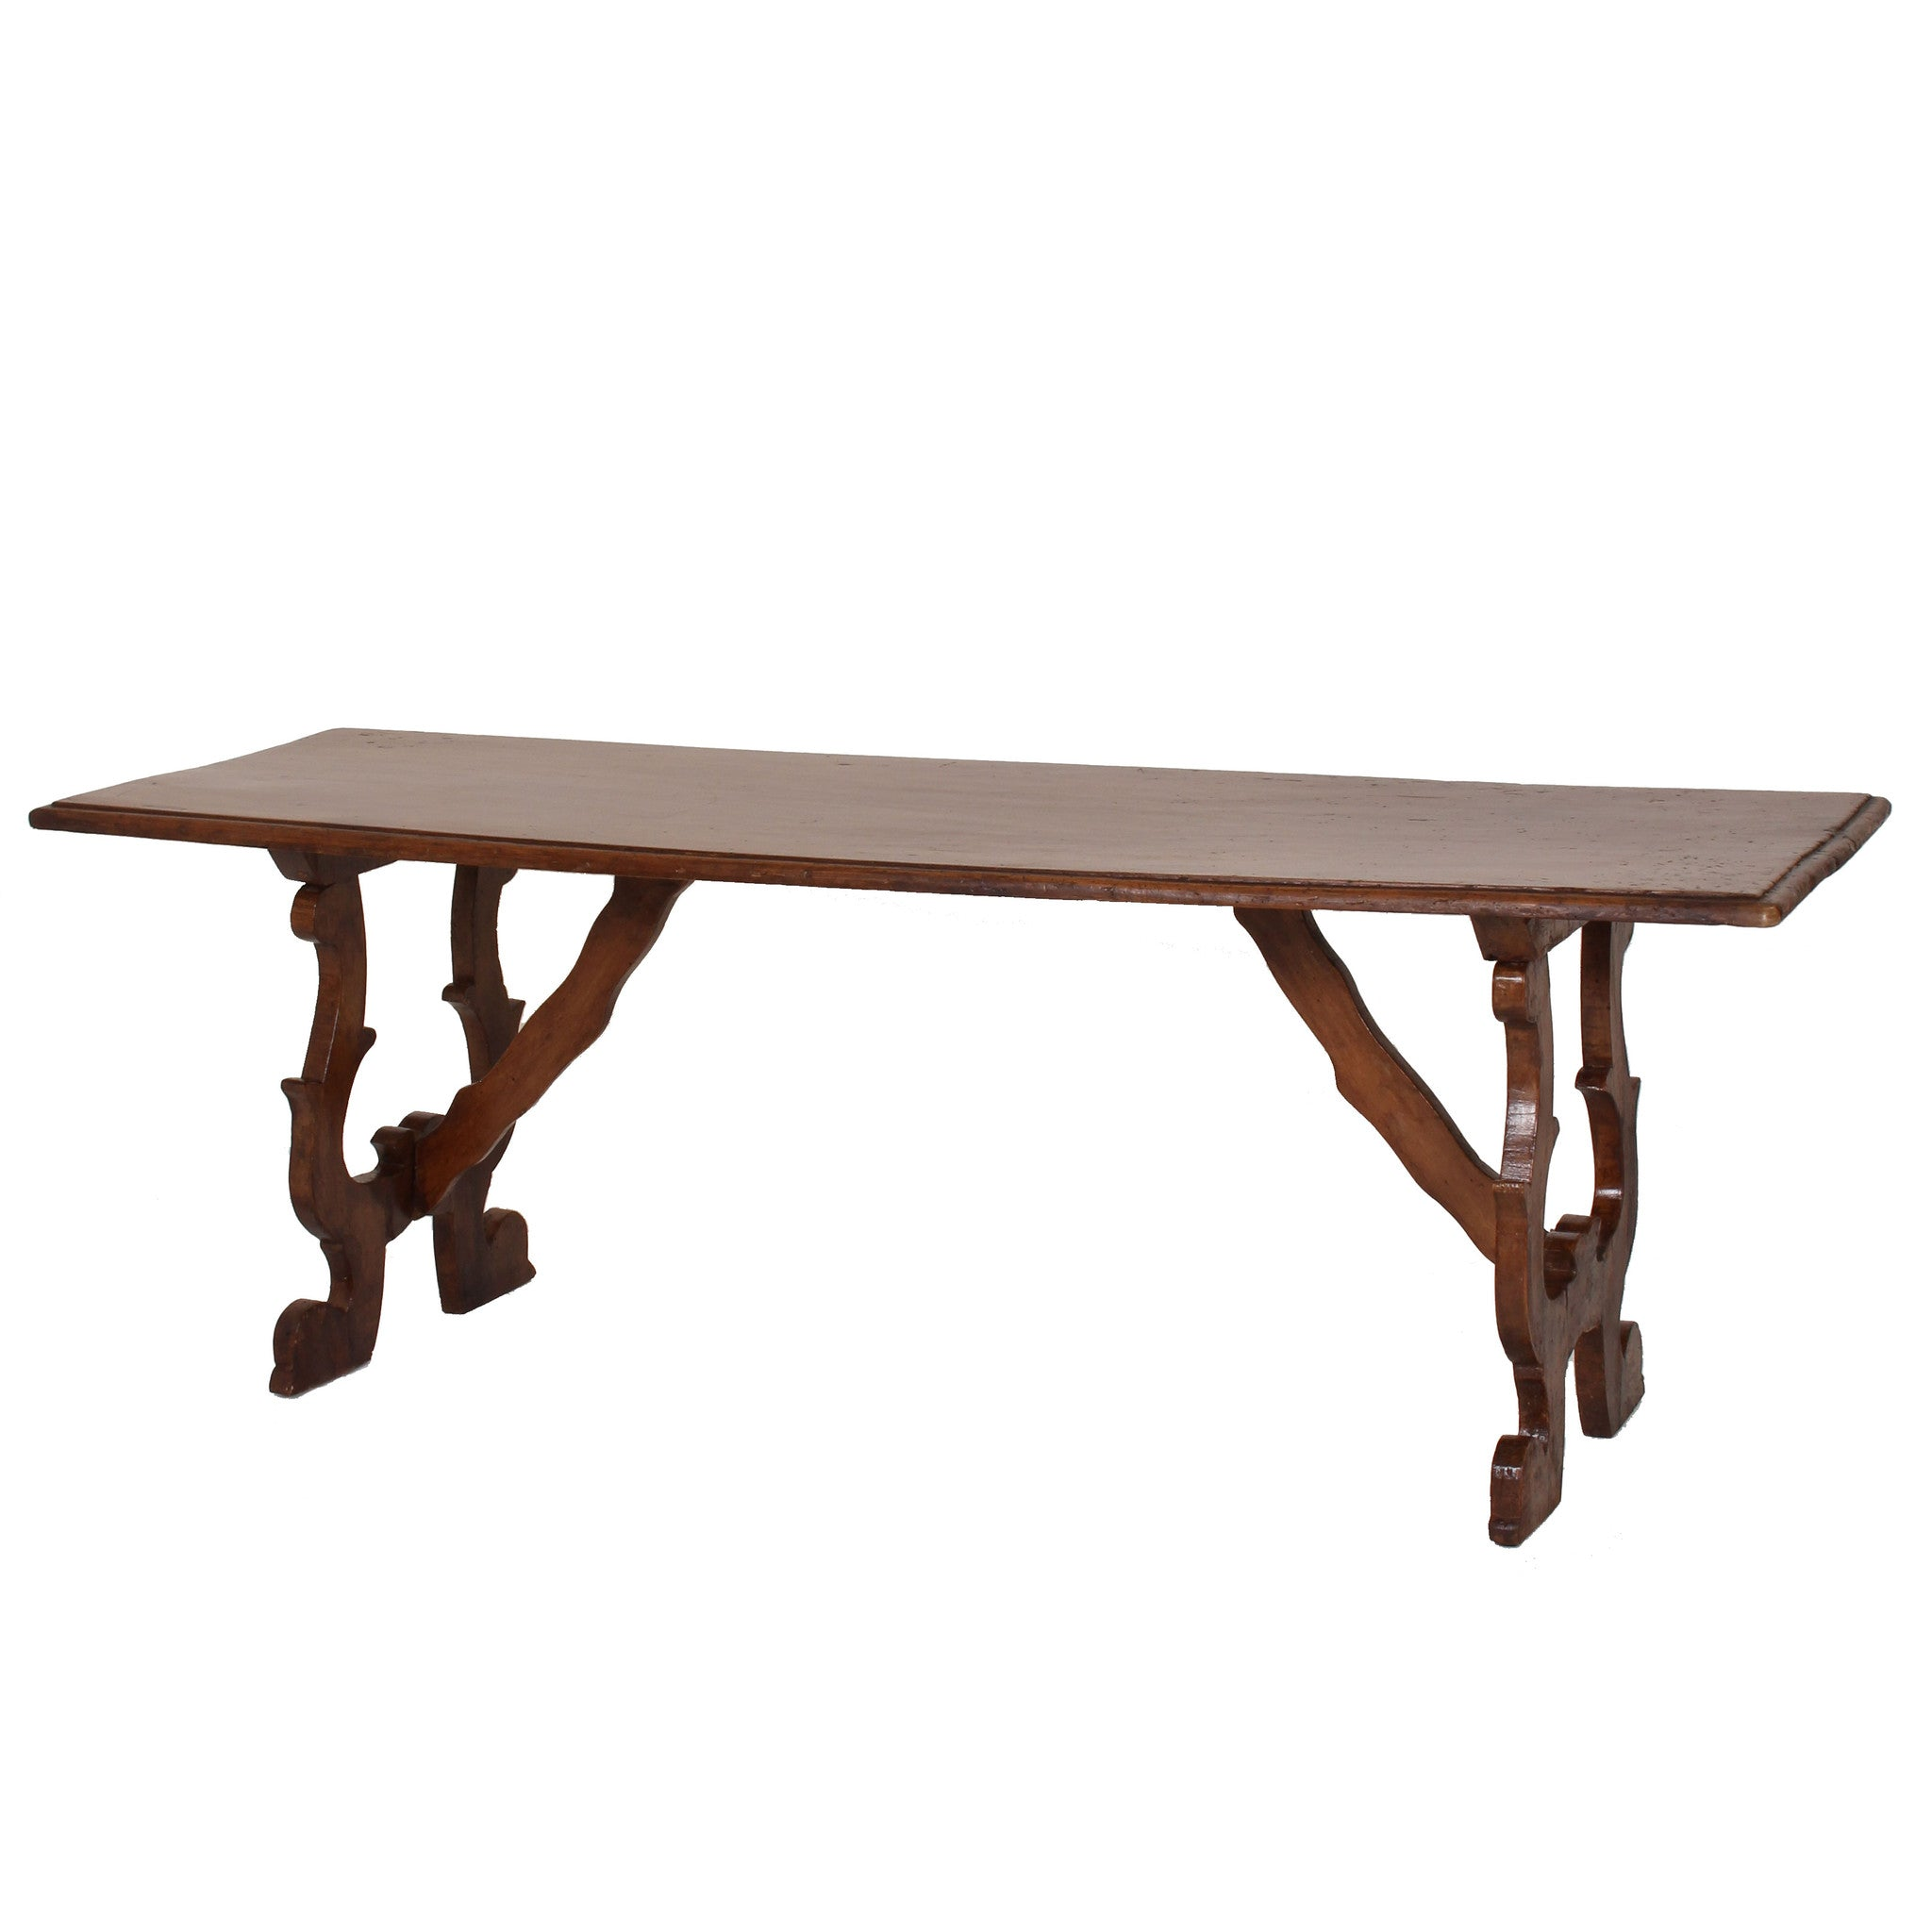 Italian baroque style walnut coffee table fatto a mano antiques italian baroque style walnut coffee table fatto a mano antiques 1 geotapseo Image collections